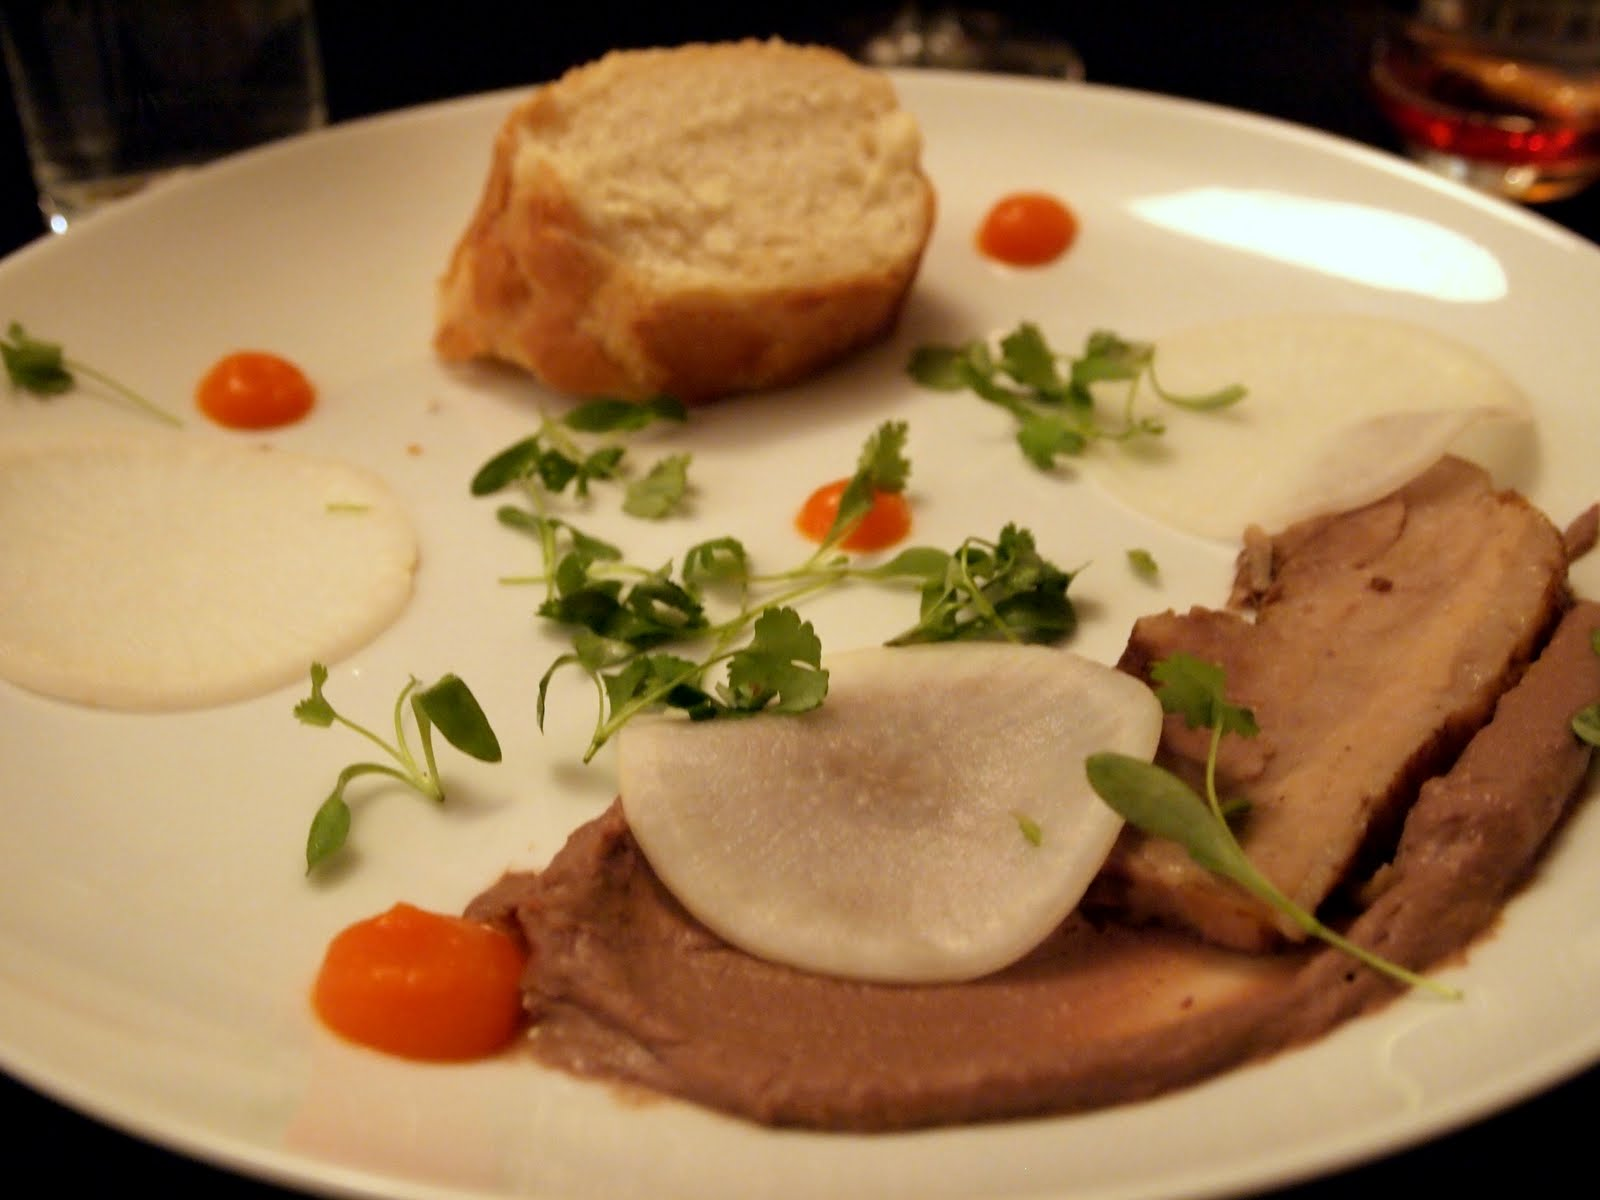 course #4: deconstructed bahn mi w/ pork belly, chicken liver mousse ...